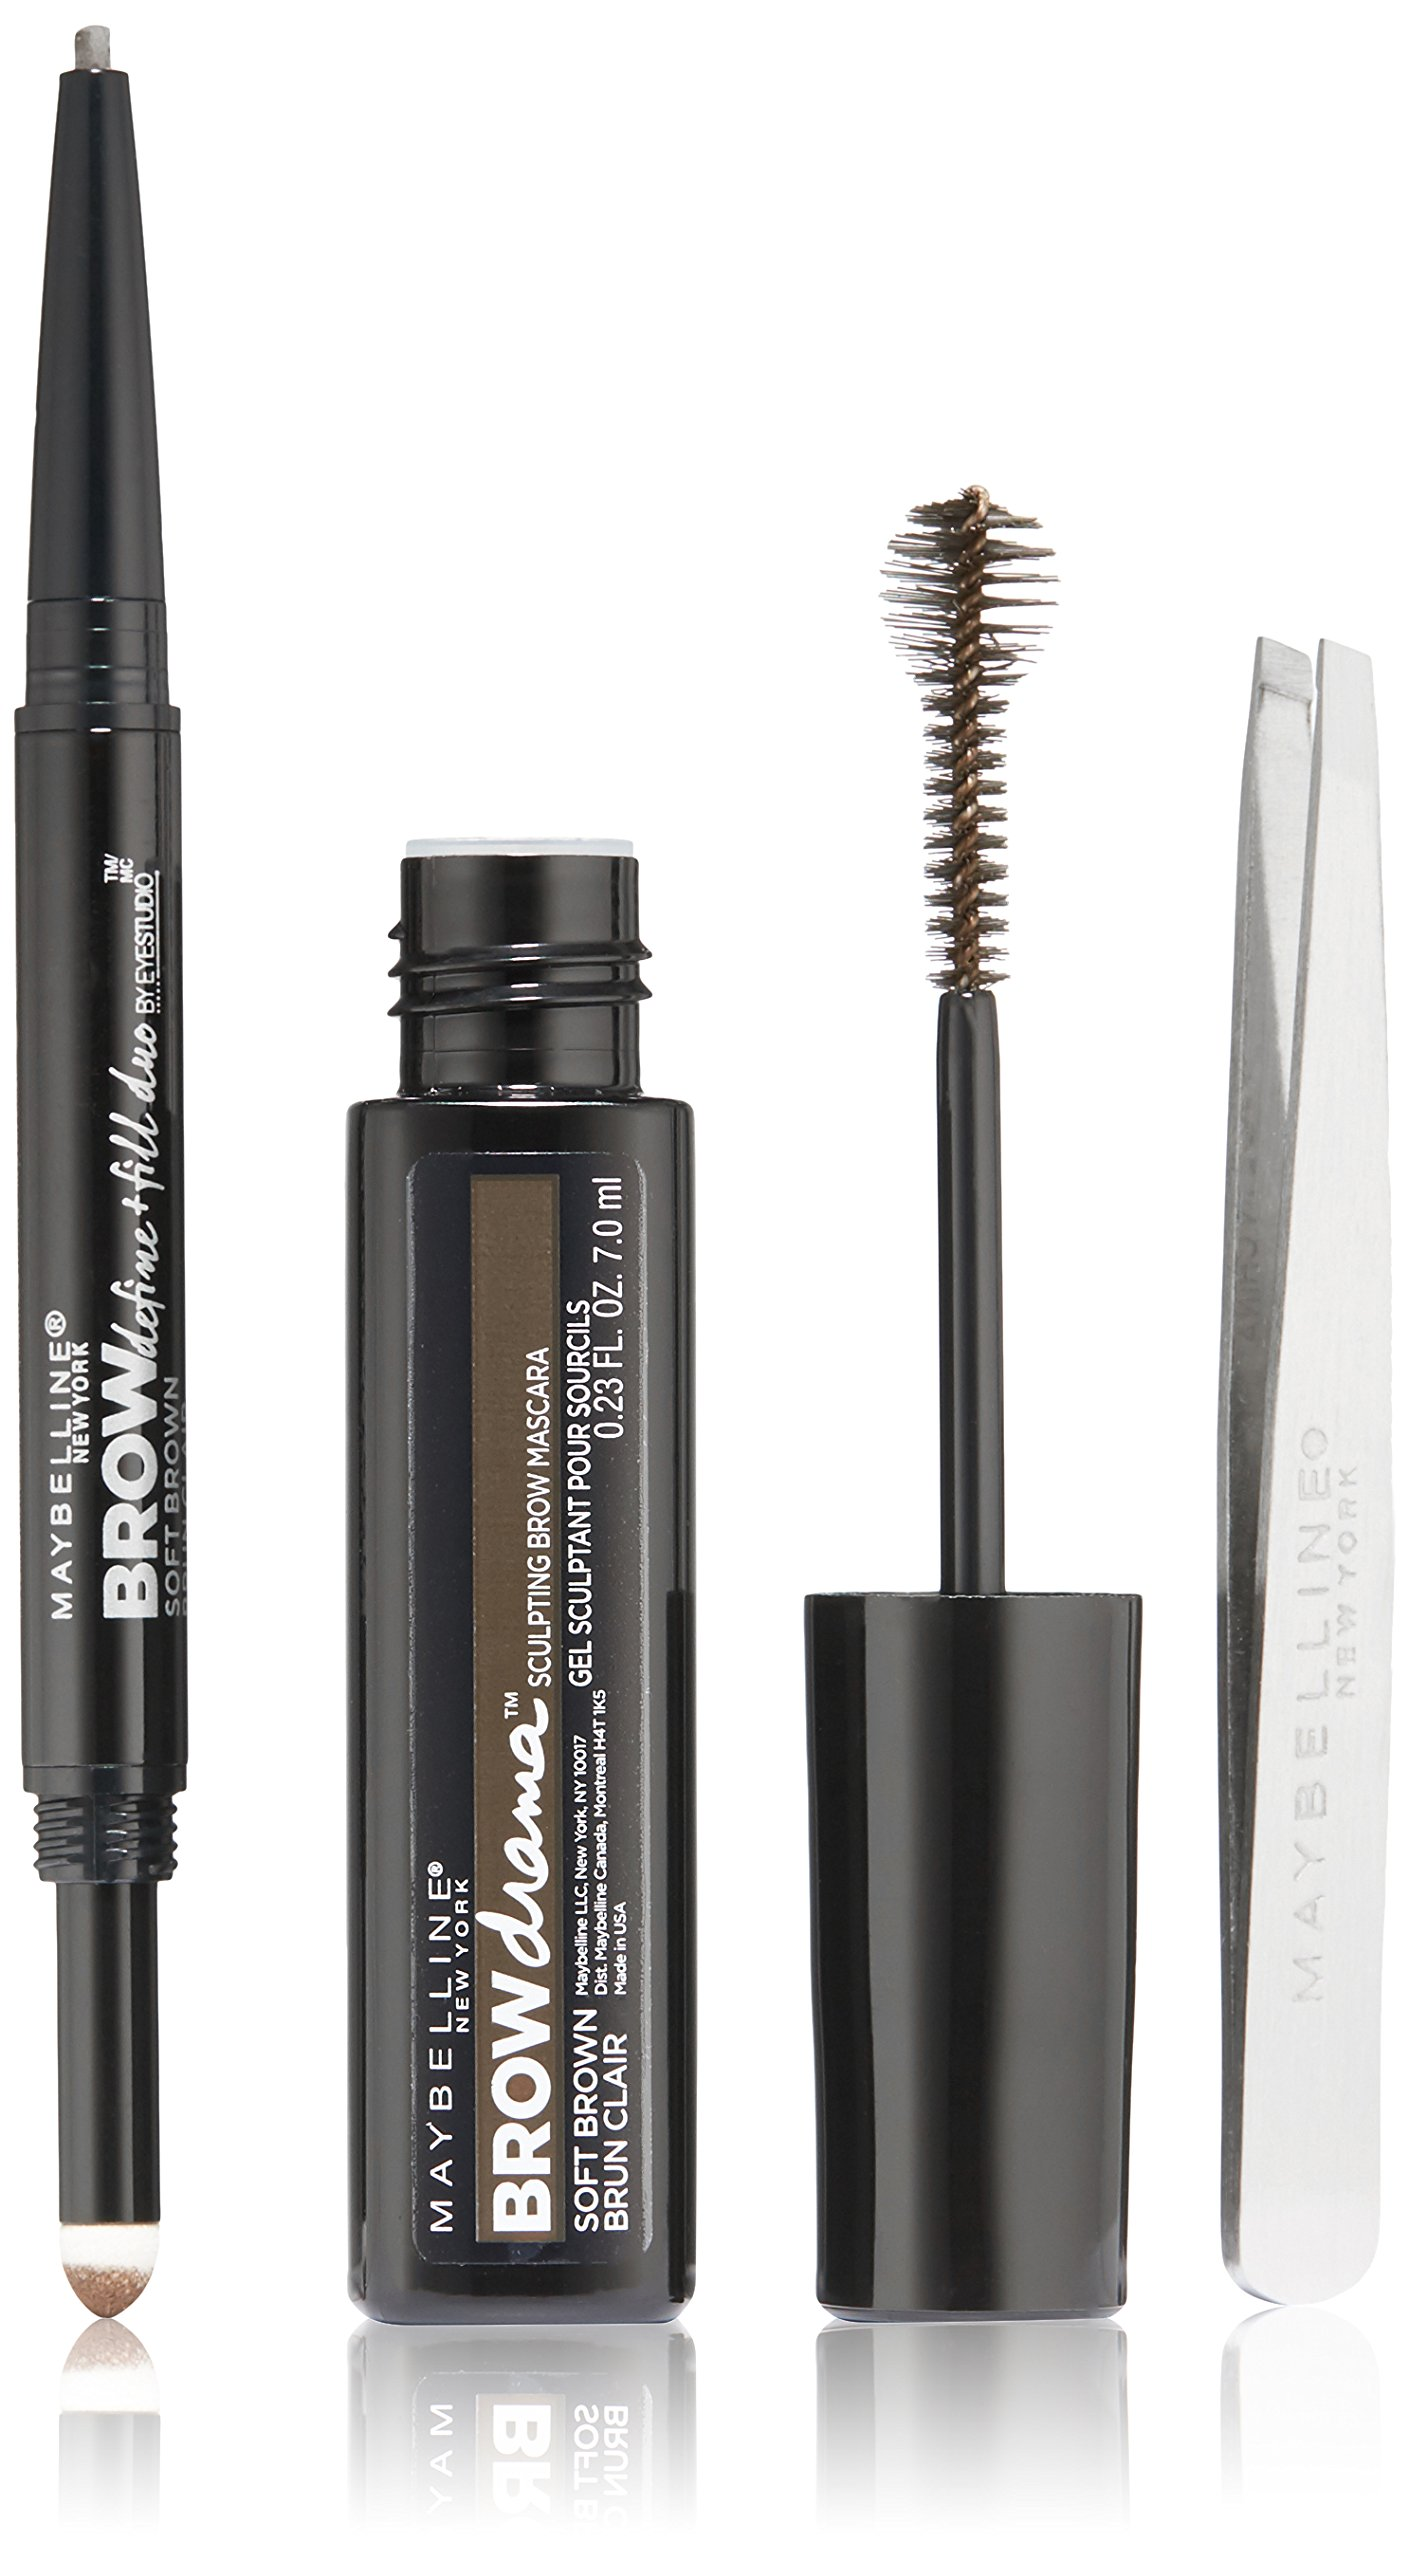 Maybelline New York Brow Gift Set, Soft Brown